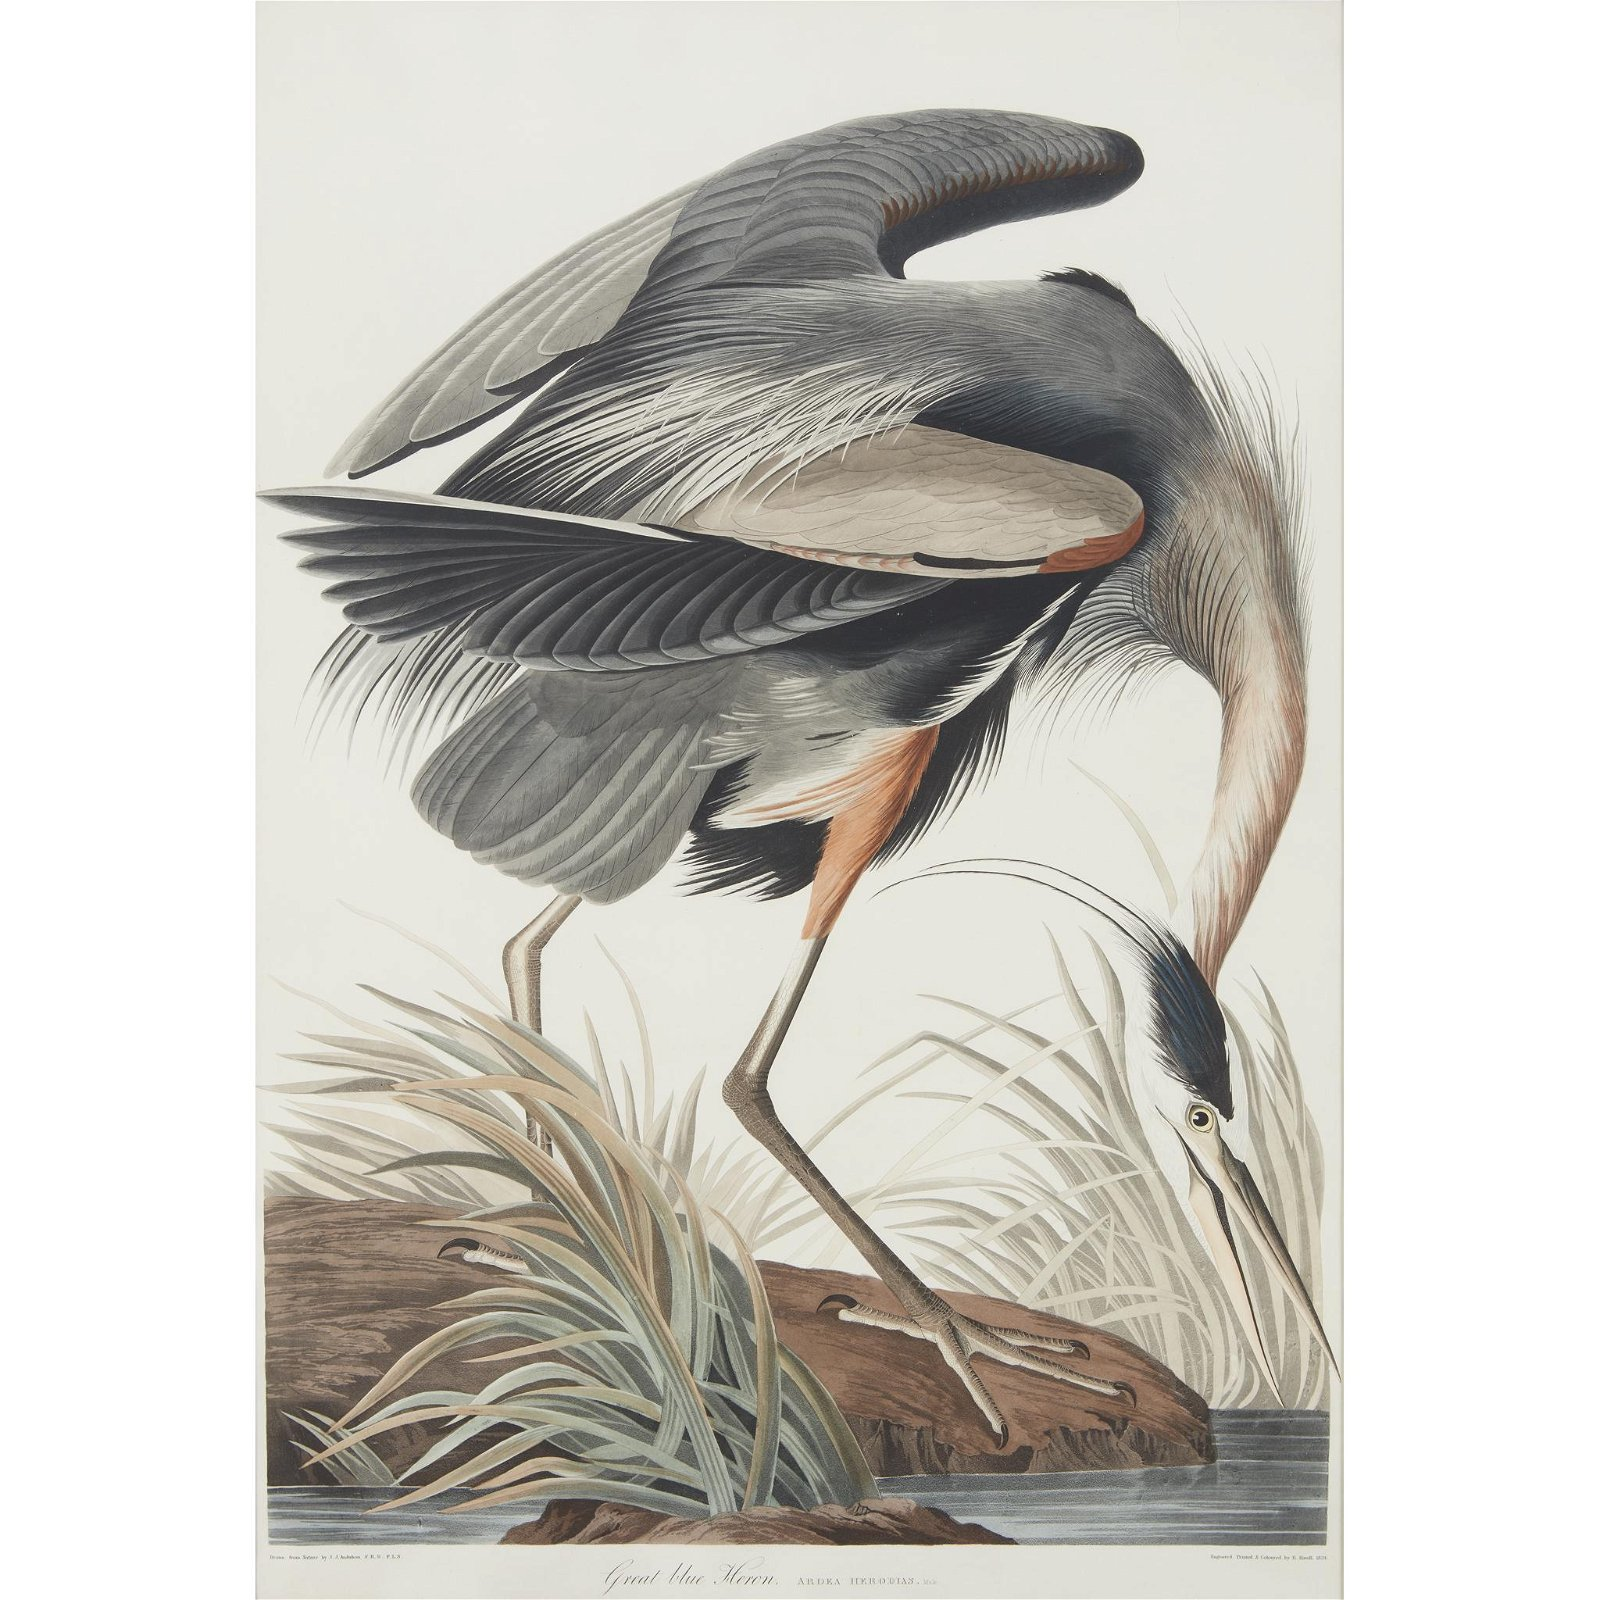 [Prints] Audubon, John James, Great Blue Heron